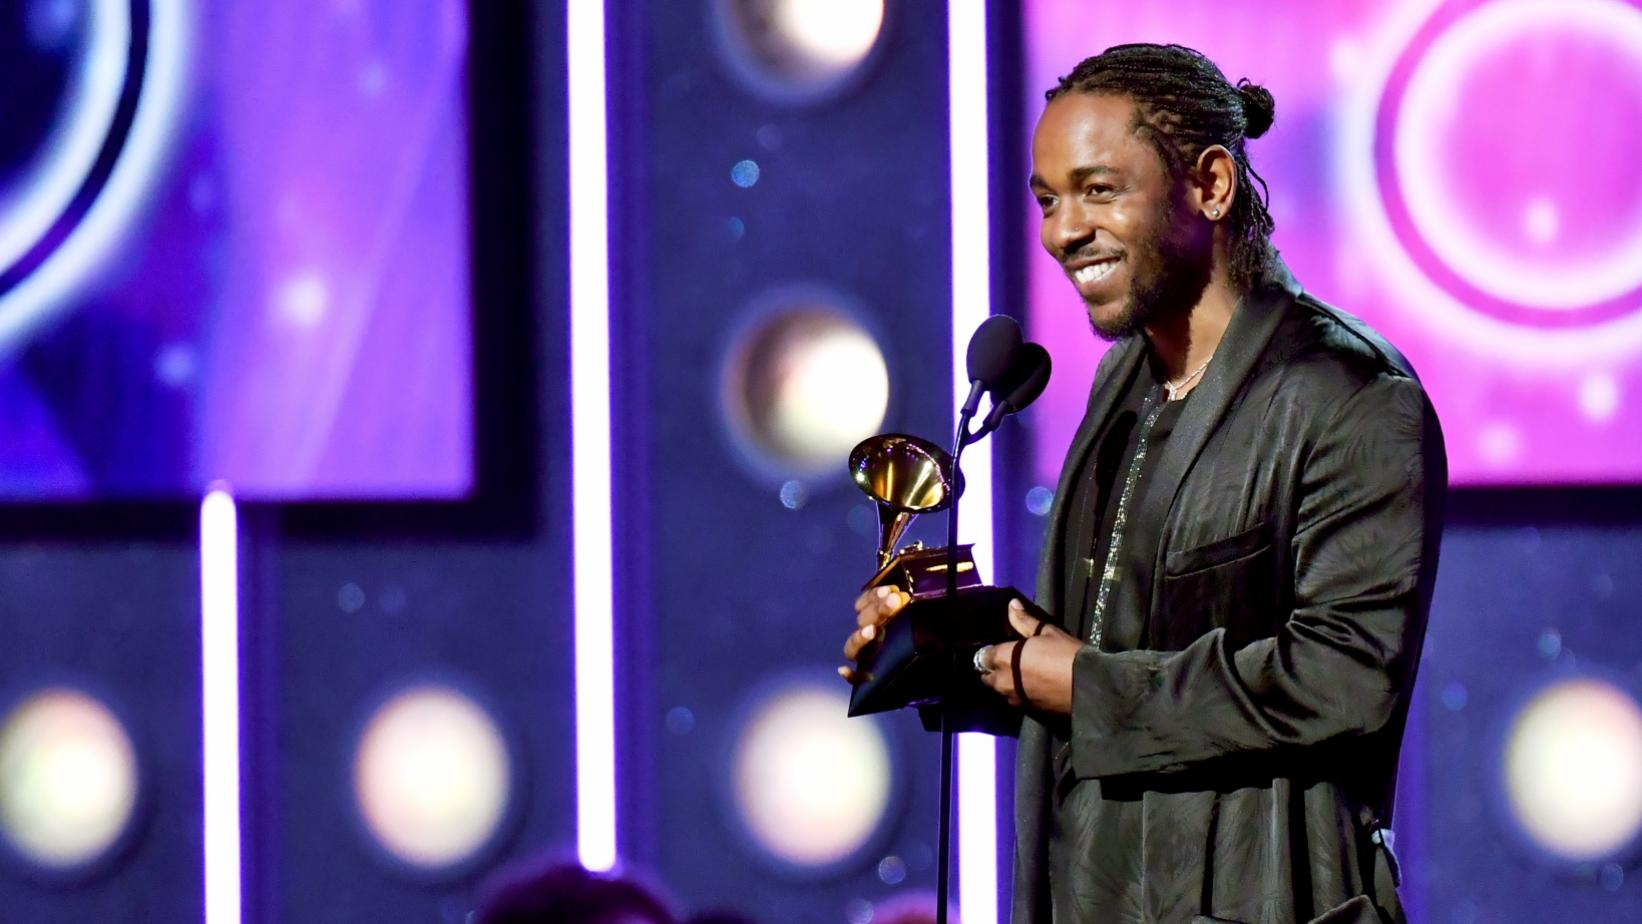 Kendrick Lamar on stage at the 60th GRAMMY Awards